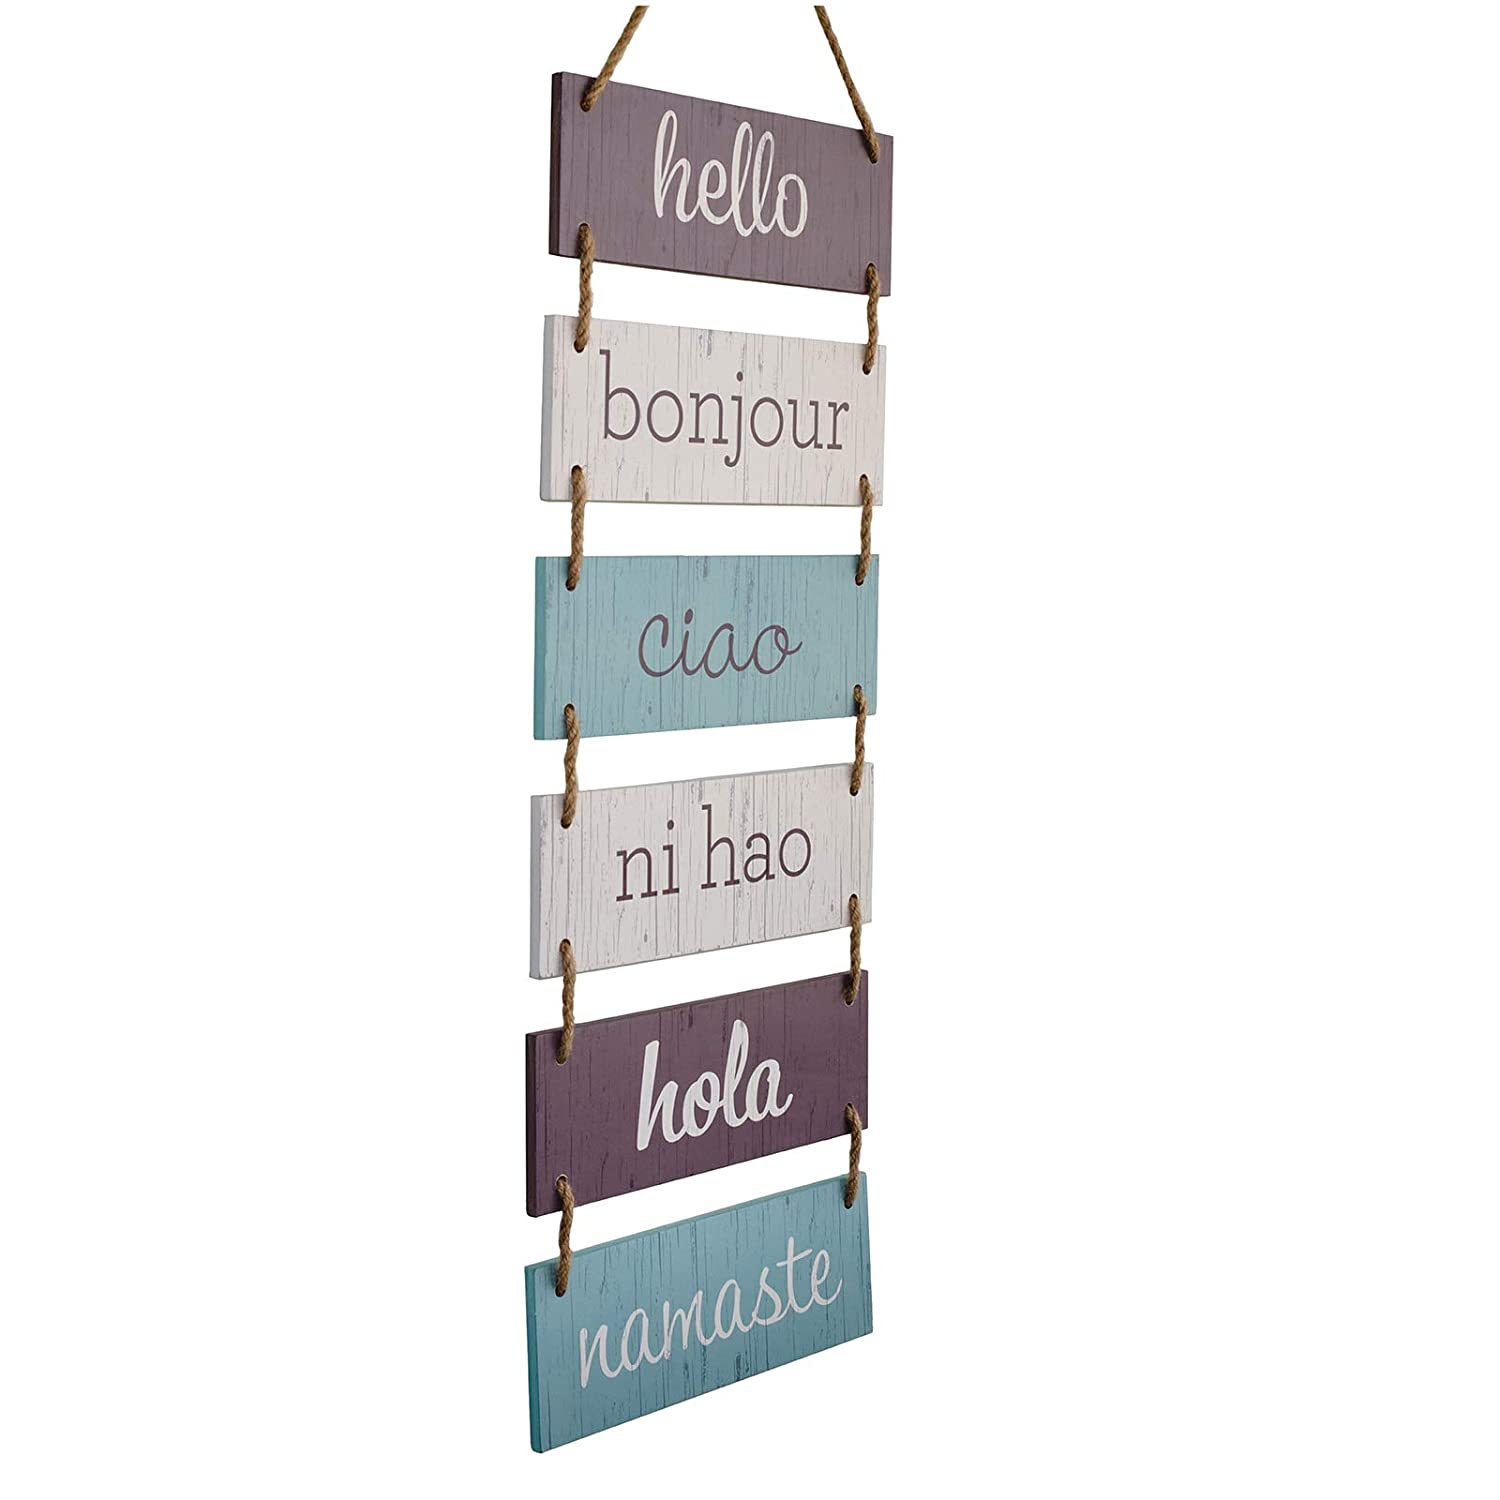 "Excello Global Products Large Hanging Wall Sign: Rustic Wooden Decor (Hello, Bonjour, Ciao, Ni Hao, Hola, Namaste) Hanging Wood Wall Decoration (11.75"" x 32"")"